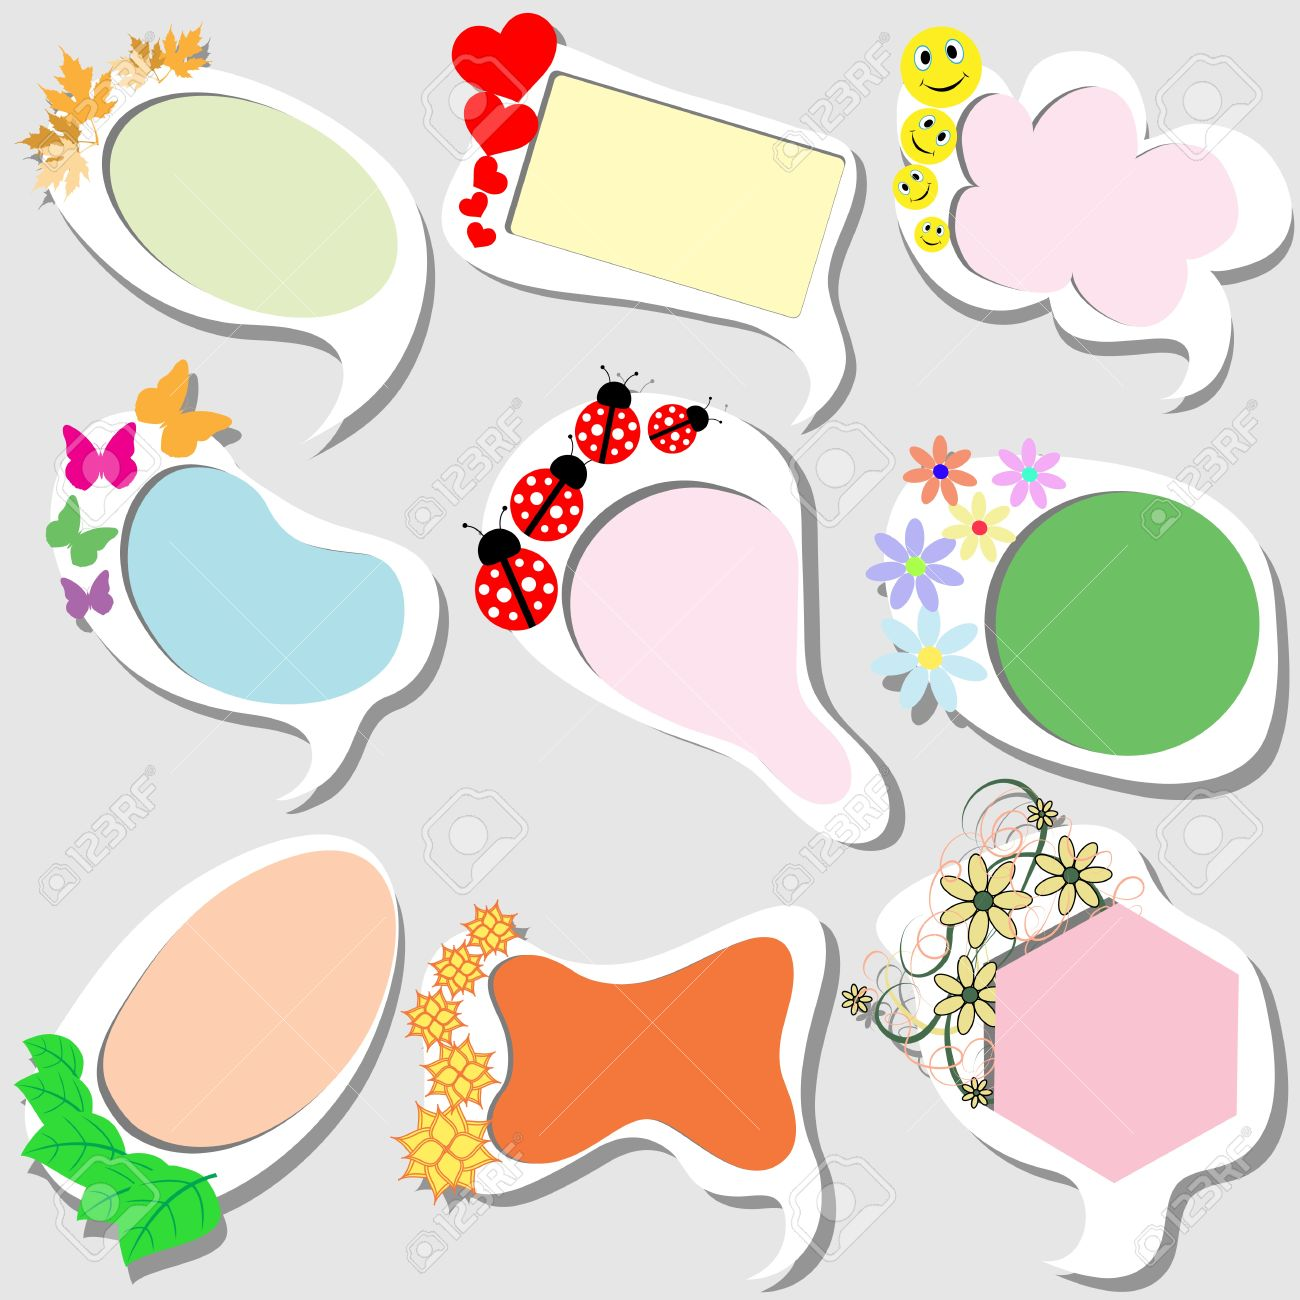 Funny Colored Frames In A Children\'s Style Royalty Free Cliparts ...